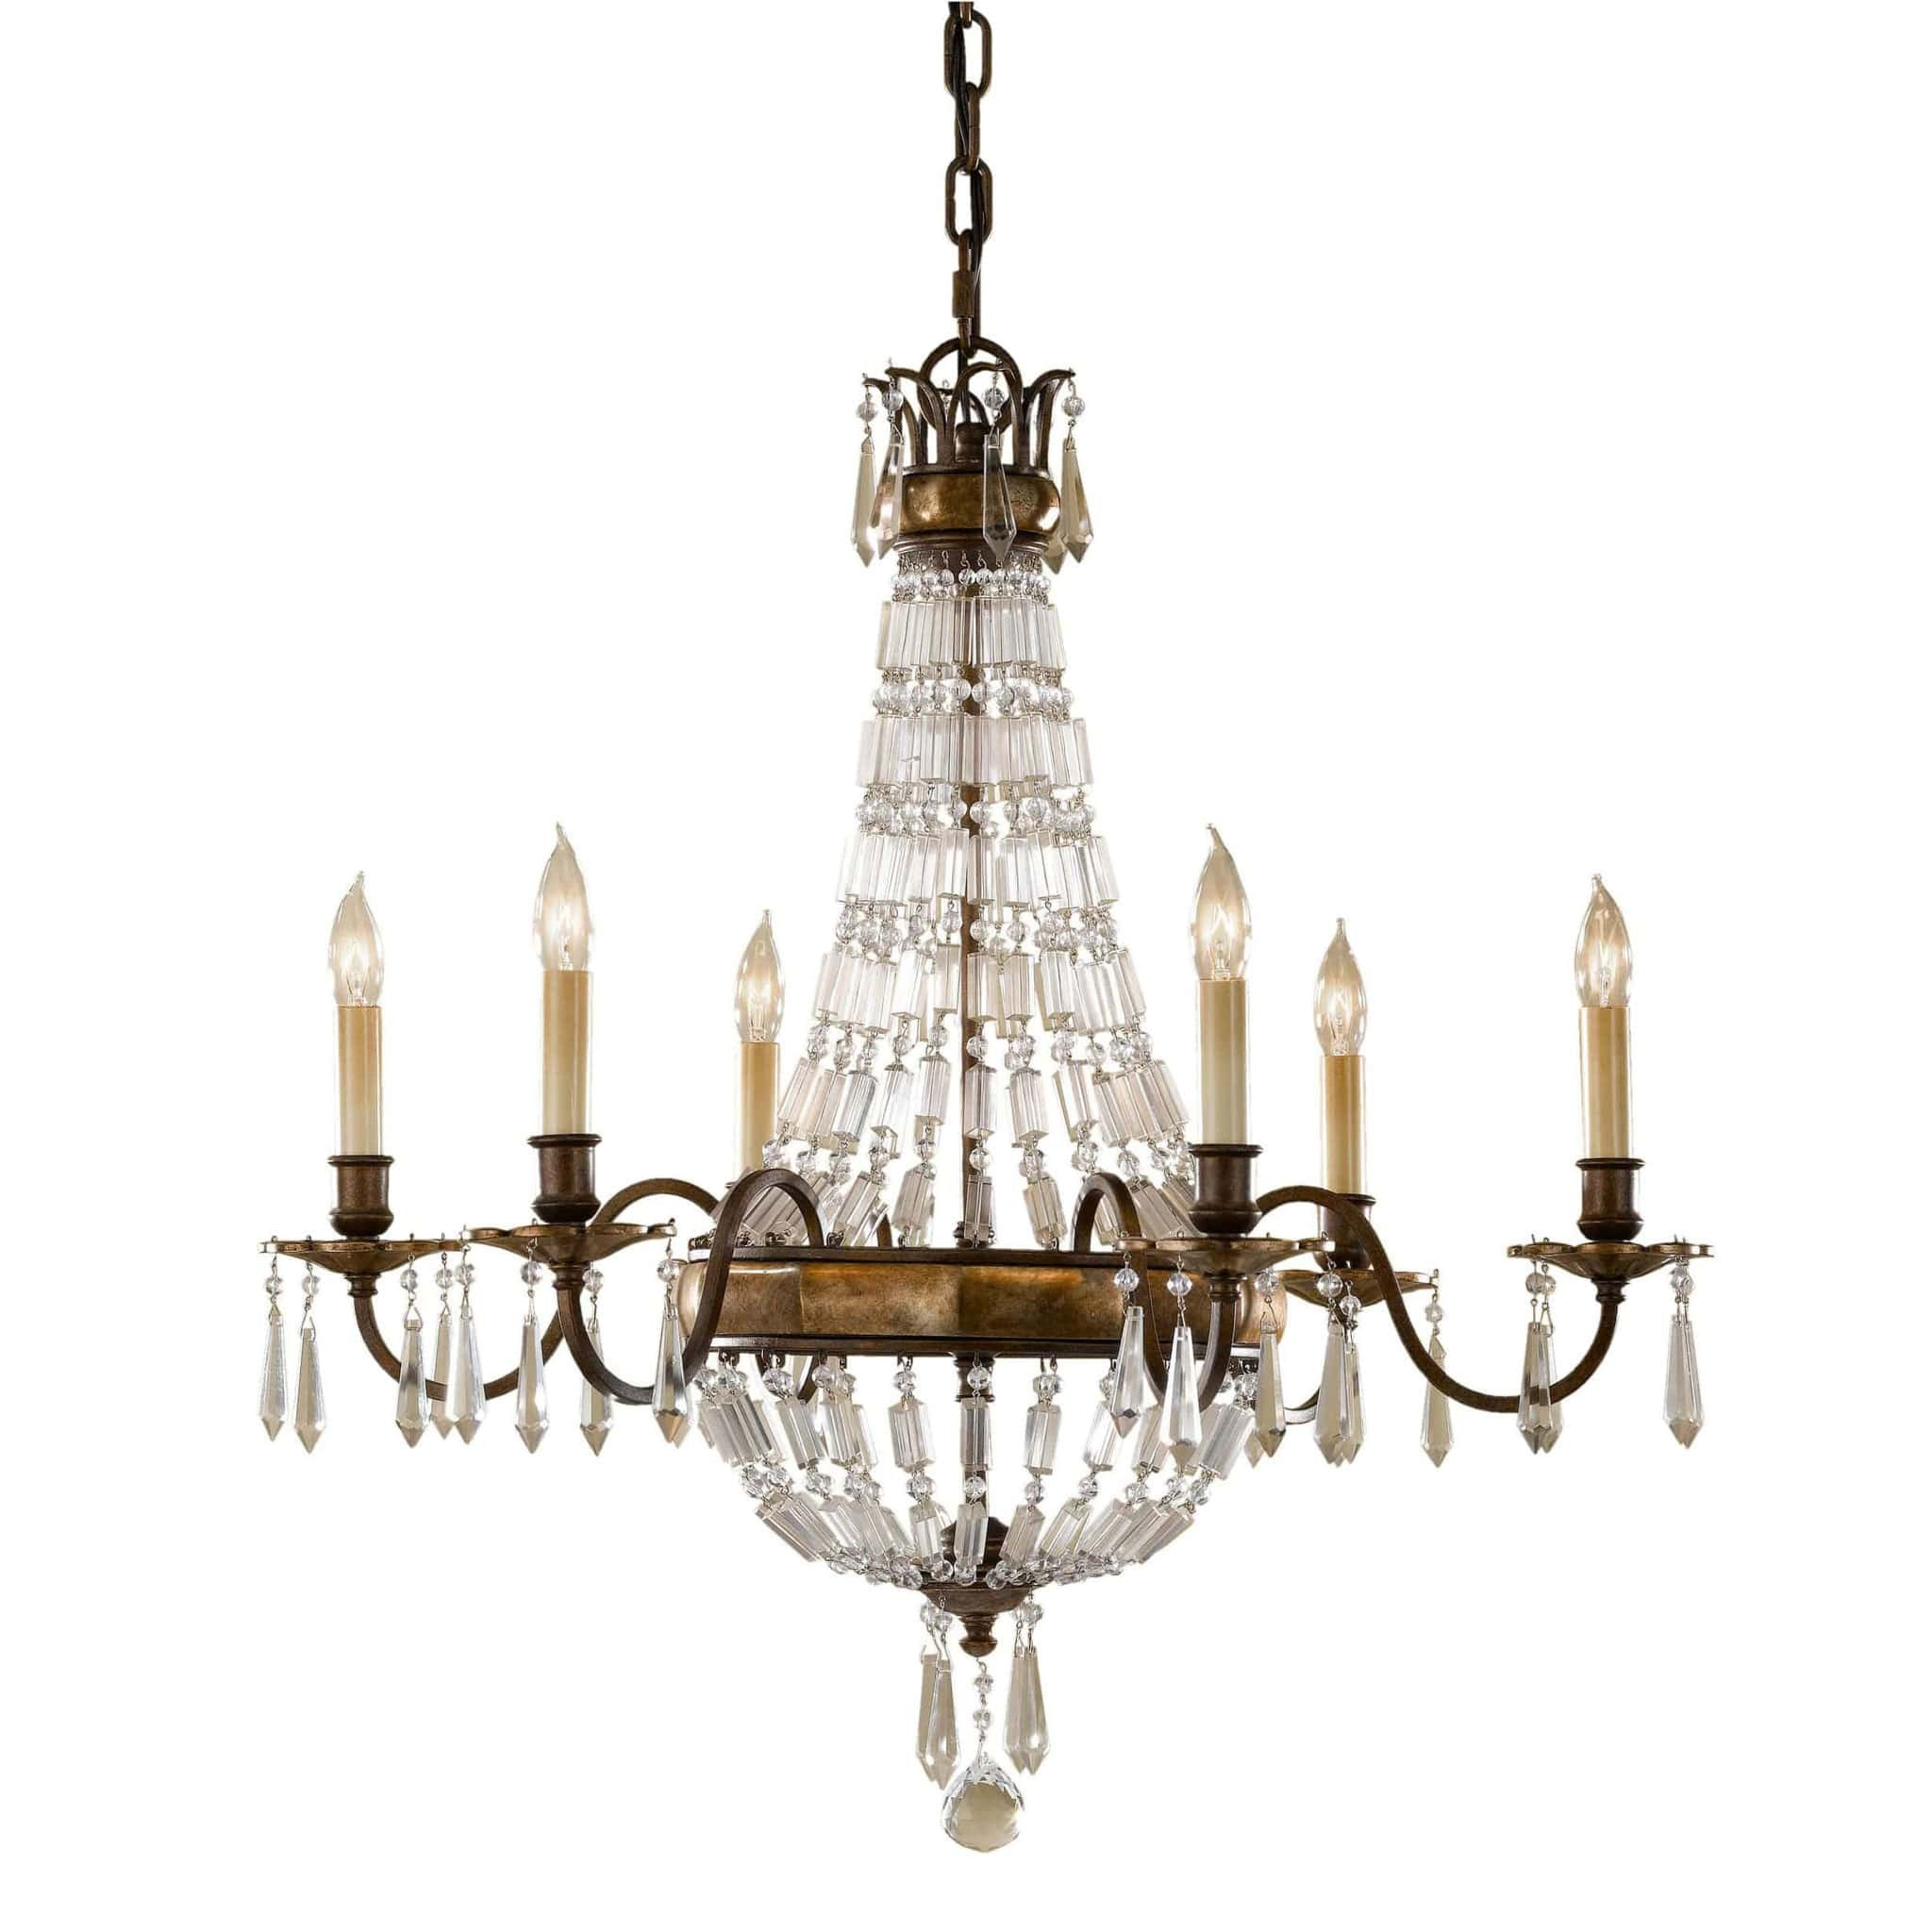 Feiss Bellini 6 Light Bronze Crystal Candle Chandelier